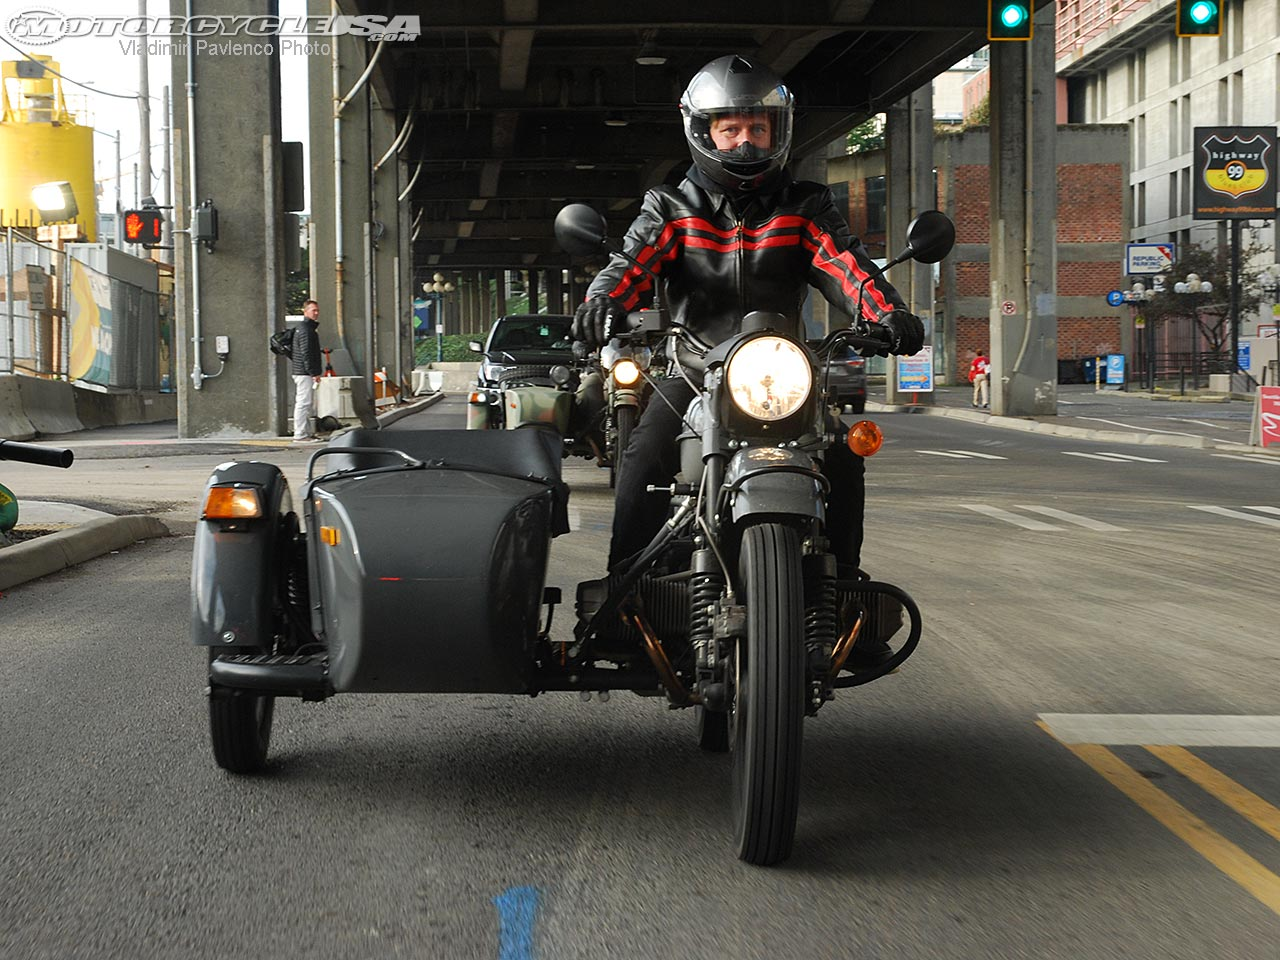 Ural Gear Up Outfit images #127669